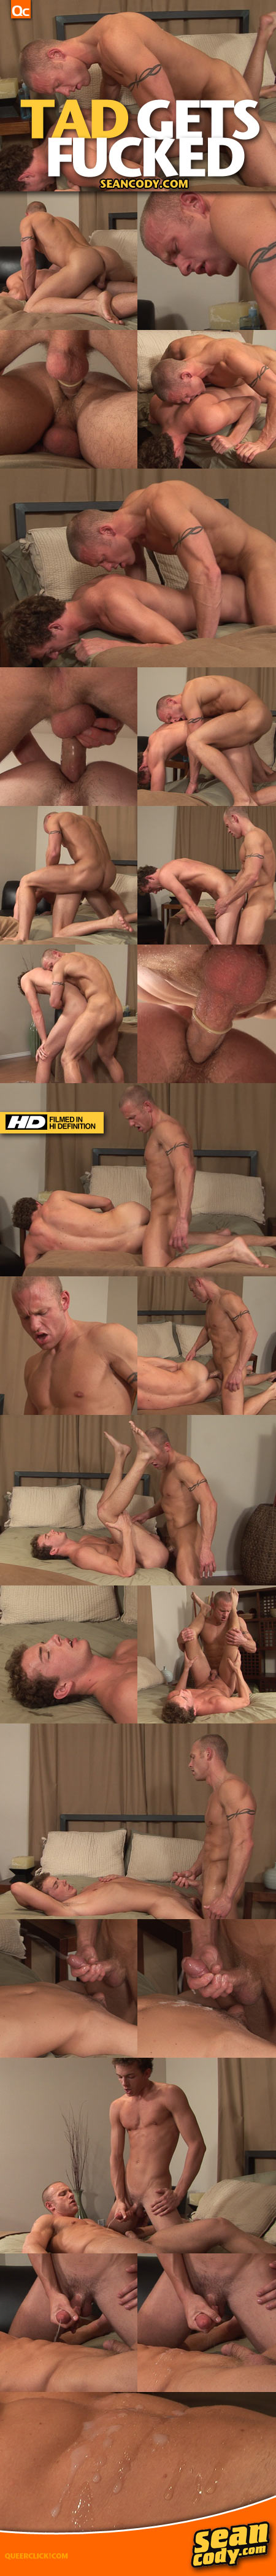 Tad Gets Fucked at SeanCody.com